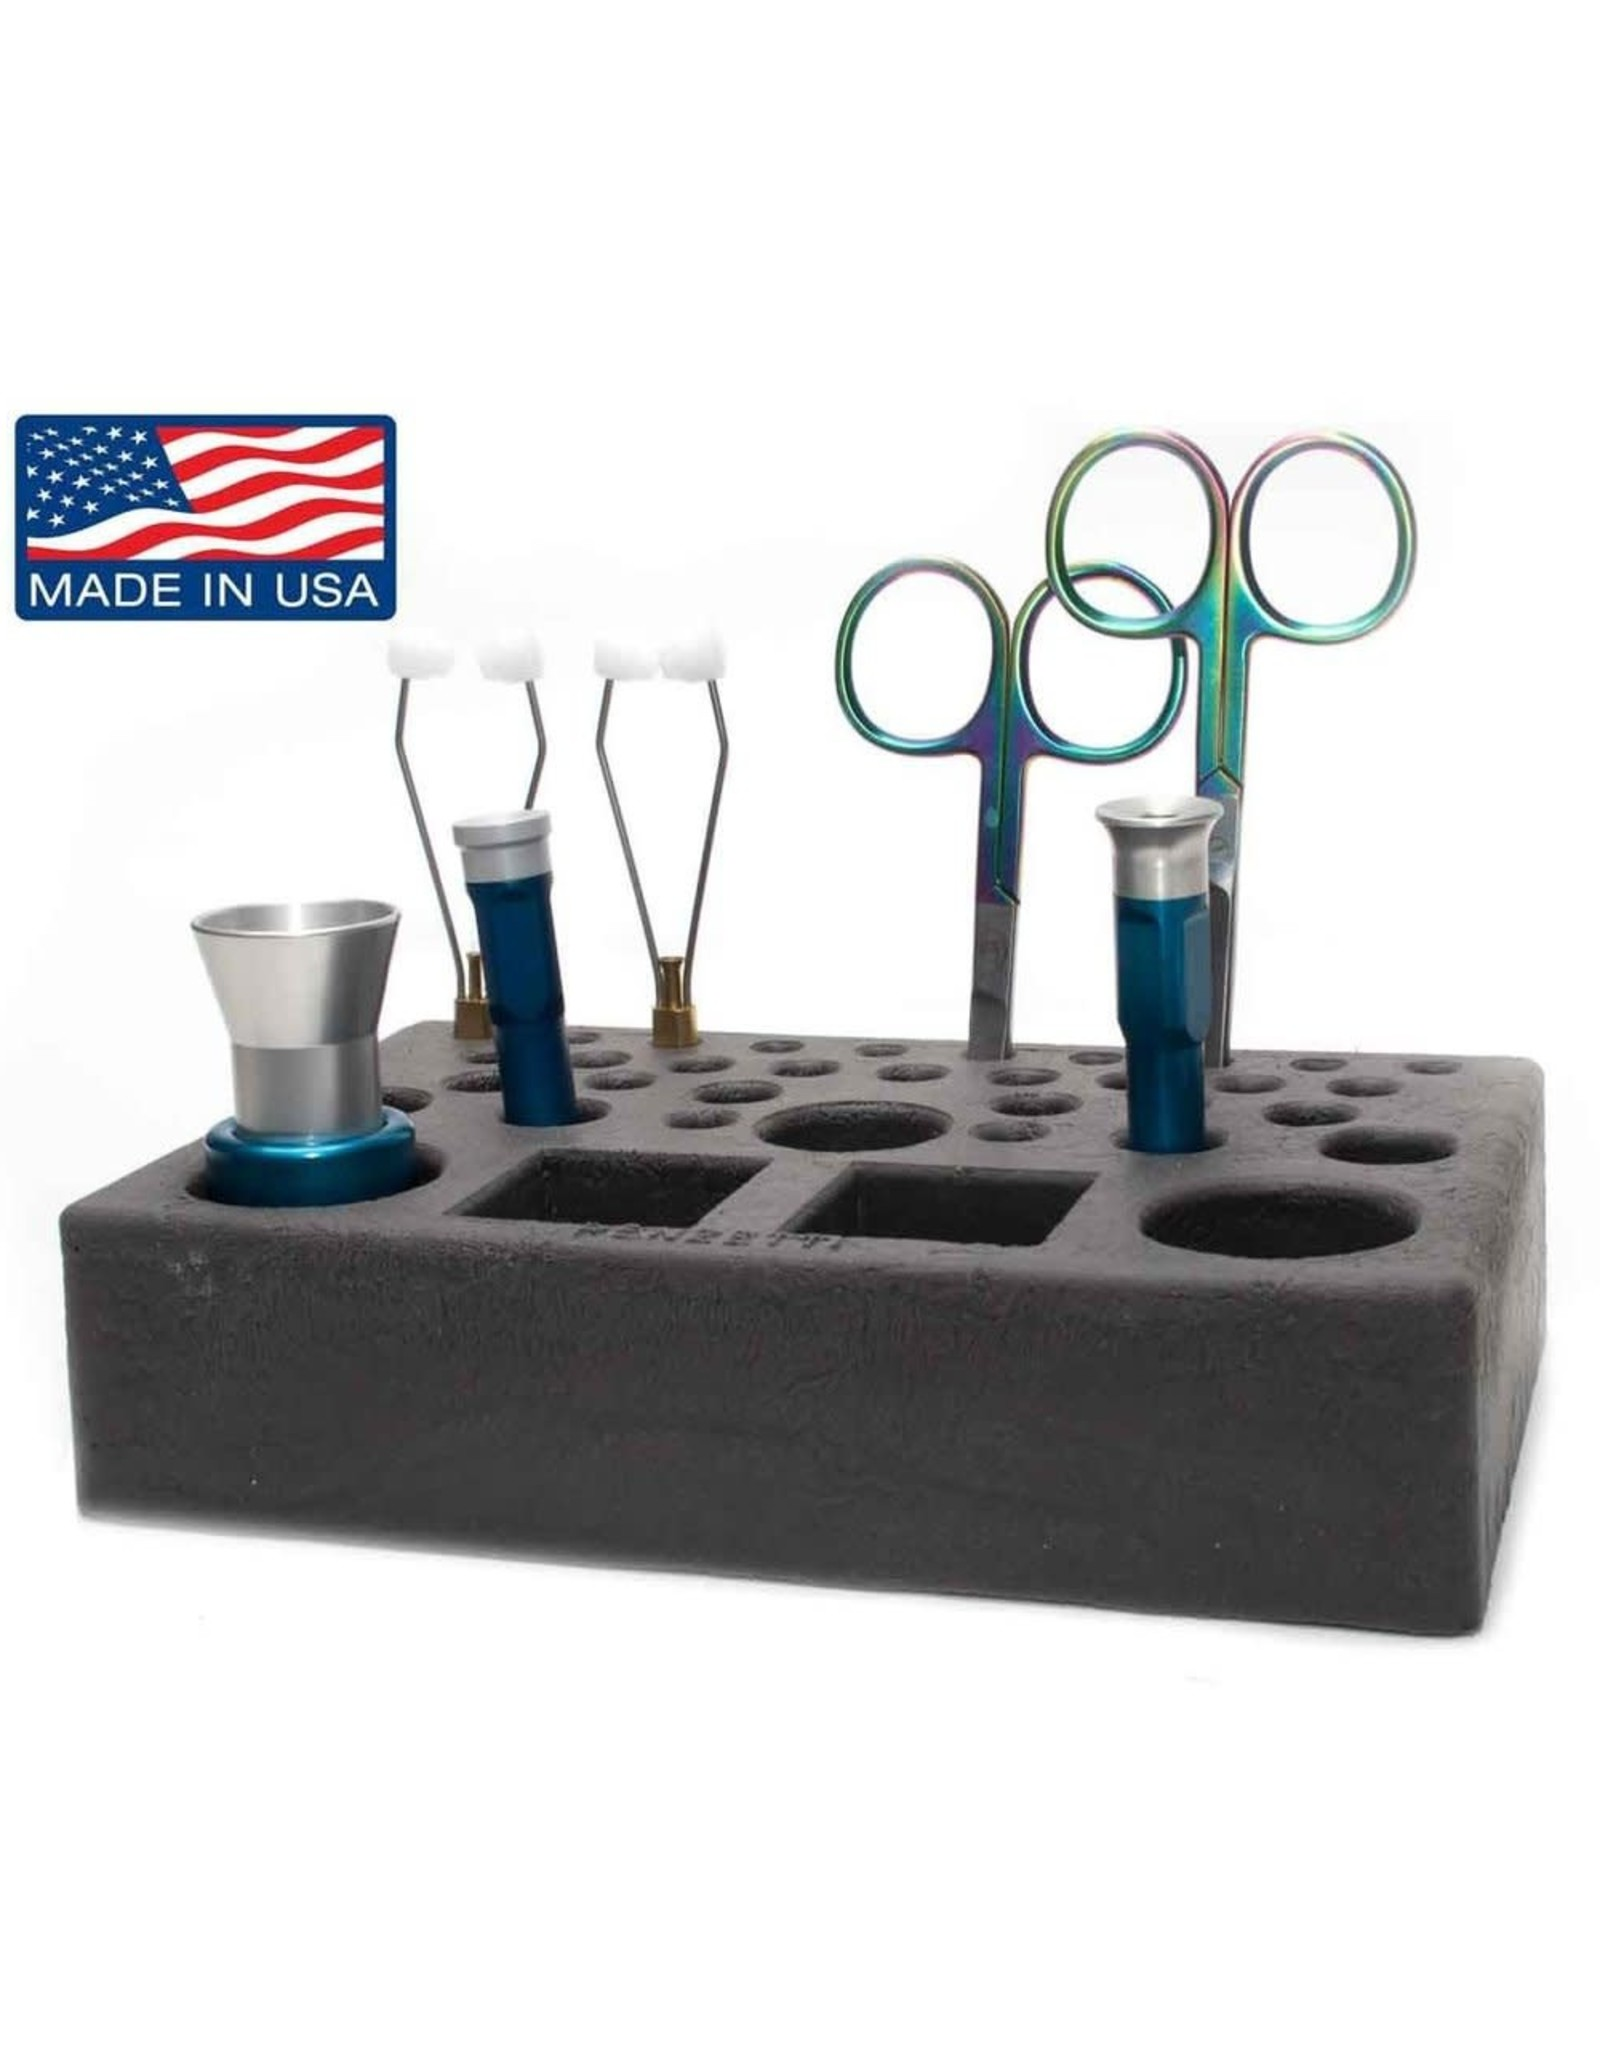 RD distribution Renzetti Soft Foam Tool Caddy